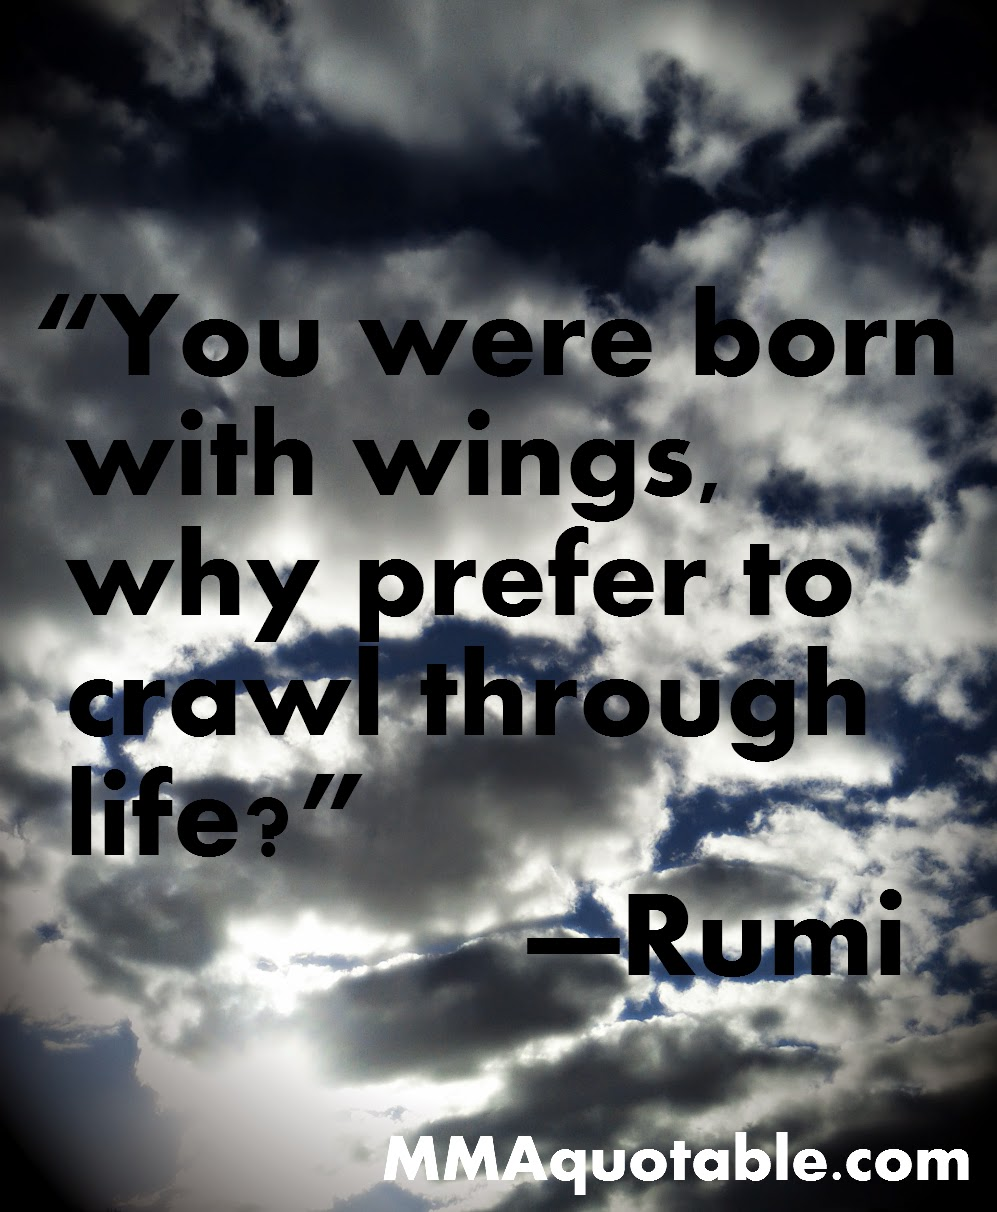 Motivational Quotes With Pictures (many MMA & UFC): Rumi